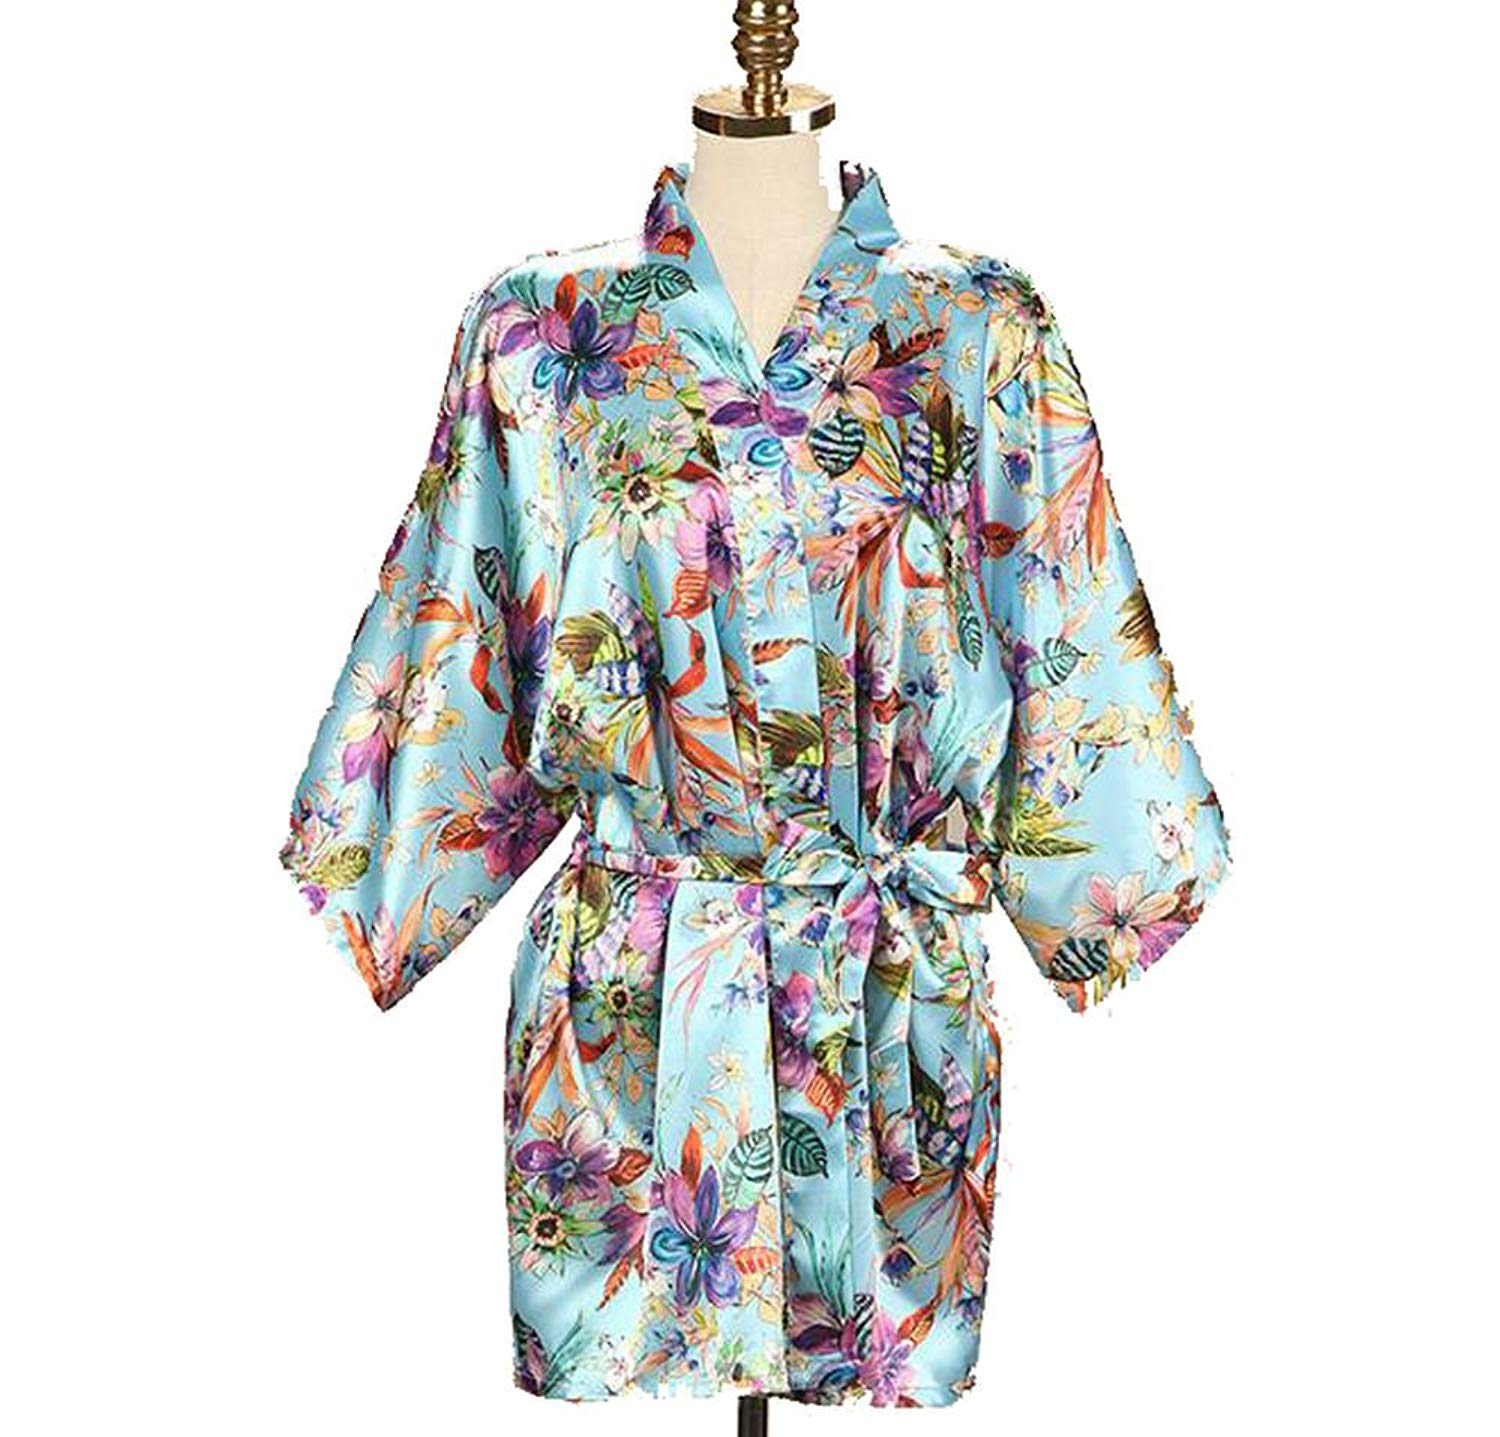 fad433f0f5 Get Quotations · Zarachilable New Satin Floral Robe